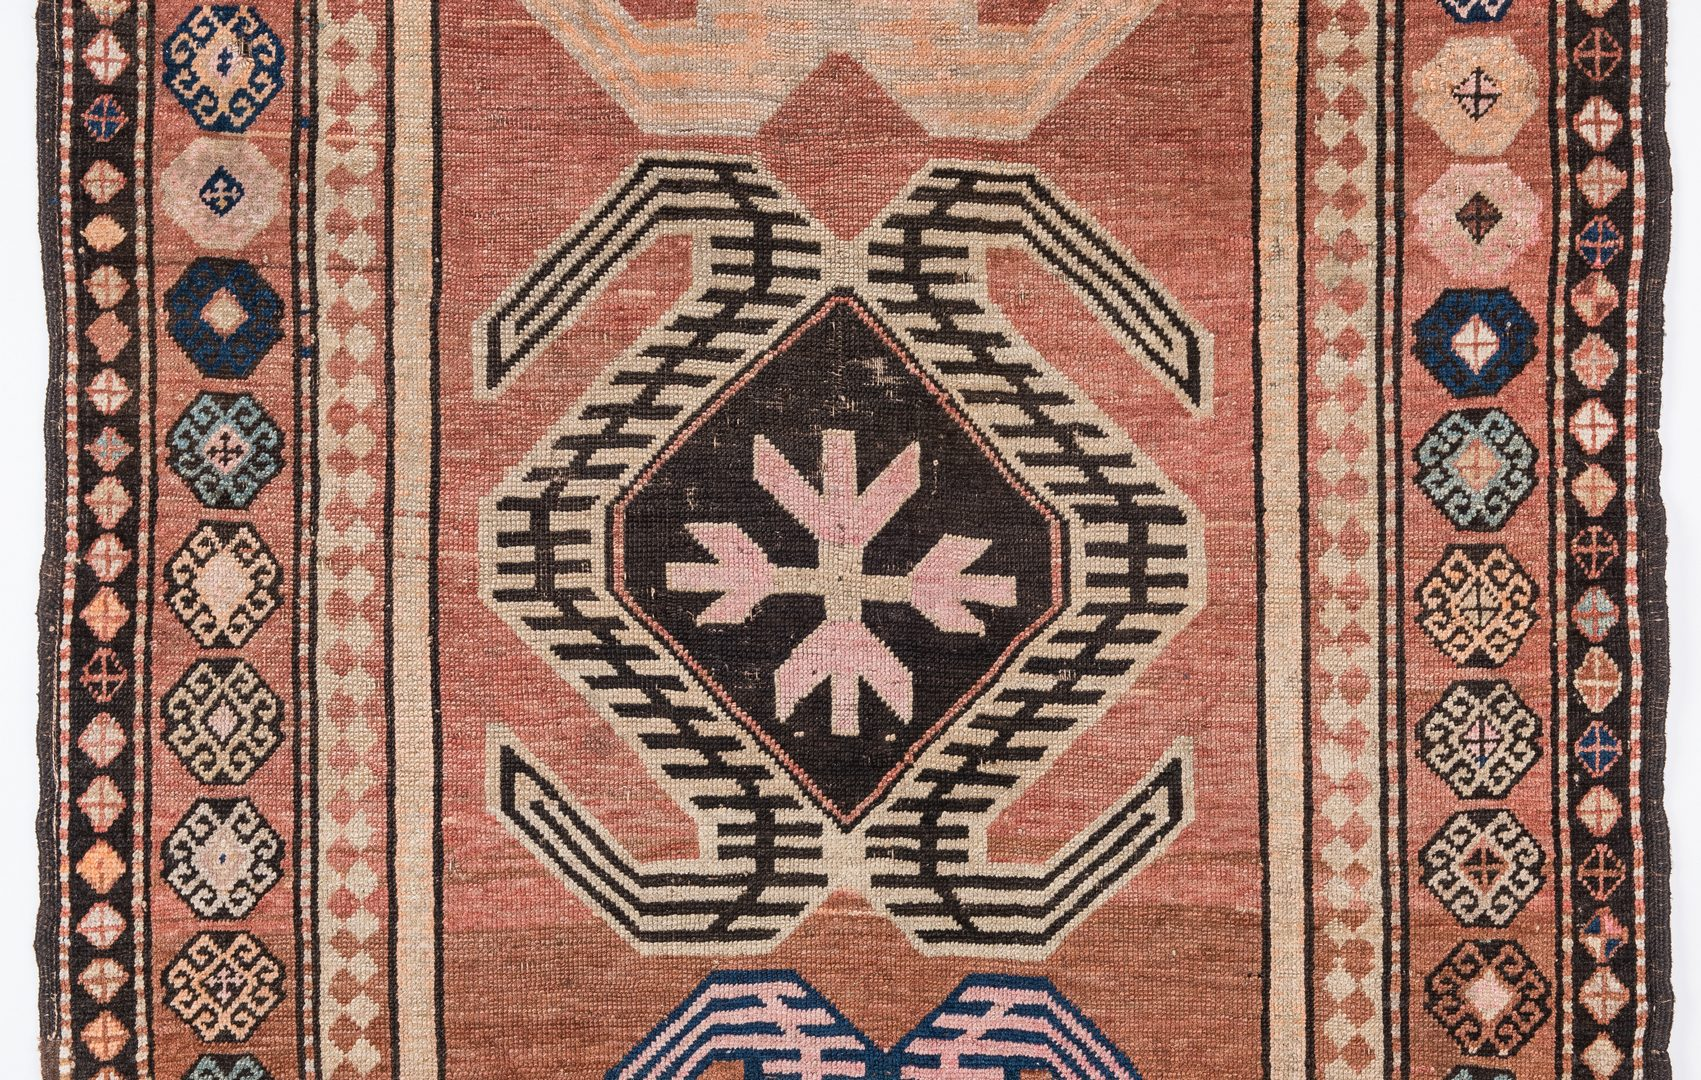 Lot 324: Antique Lenkoran Caucasian Rug, dated